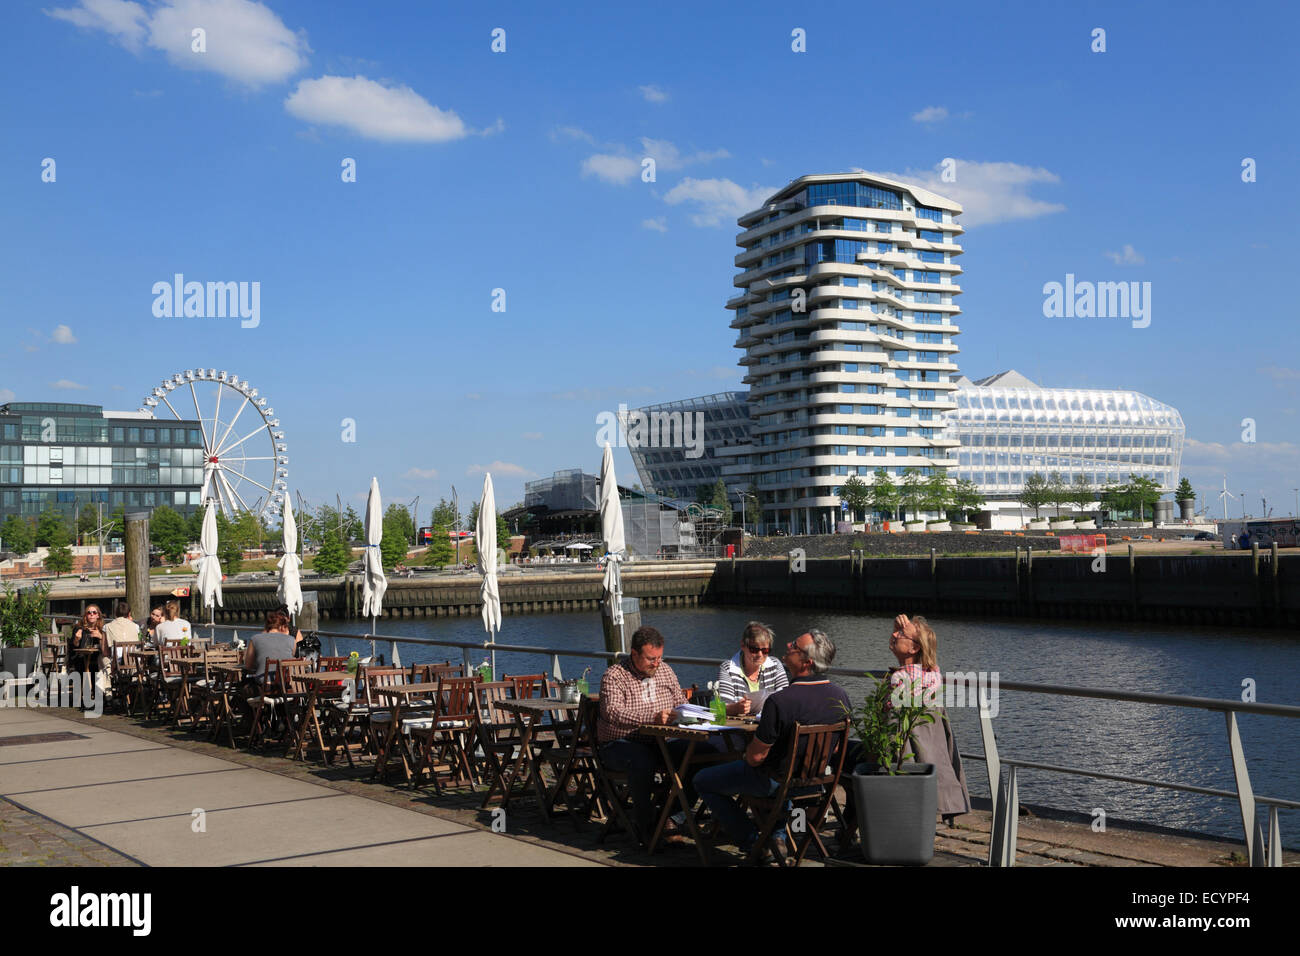 Cafe at Dalmannkai, view to Marco  Polo Tower and Unilever building, Hafencity, Hamburg, Germany, Europe Stock Photo